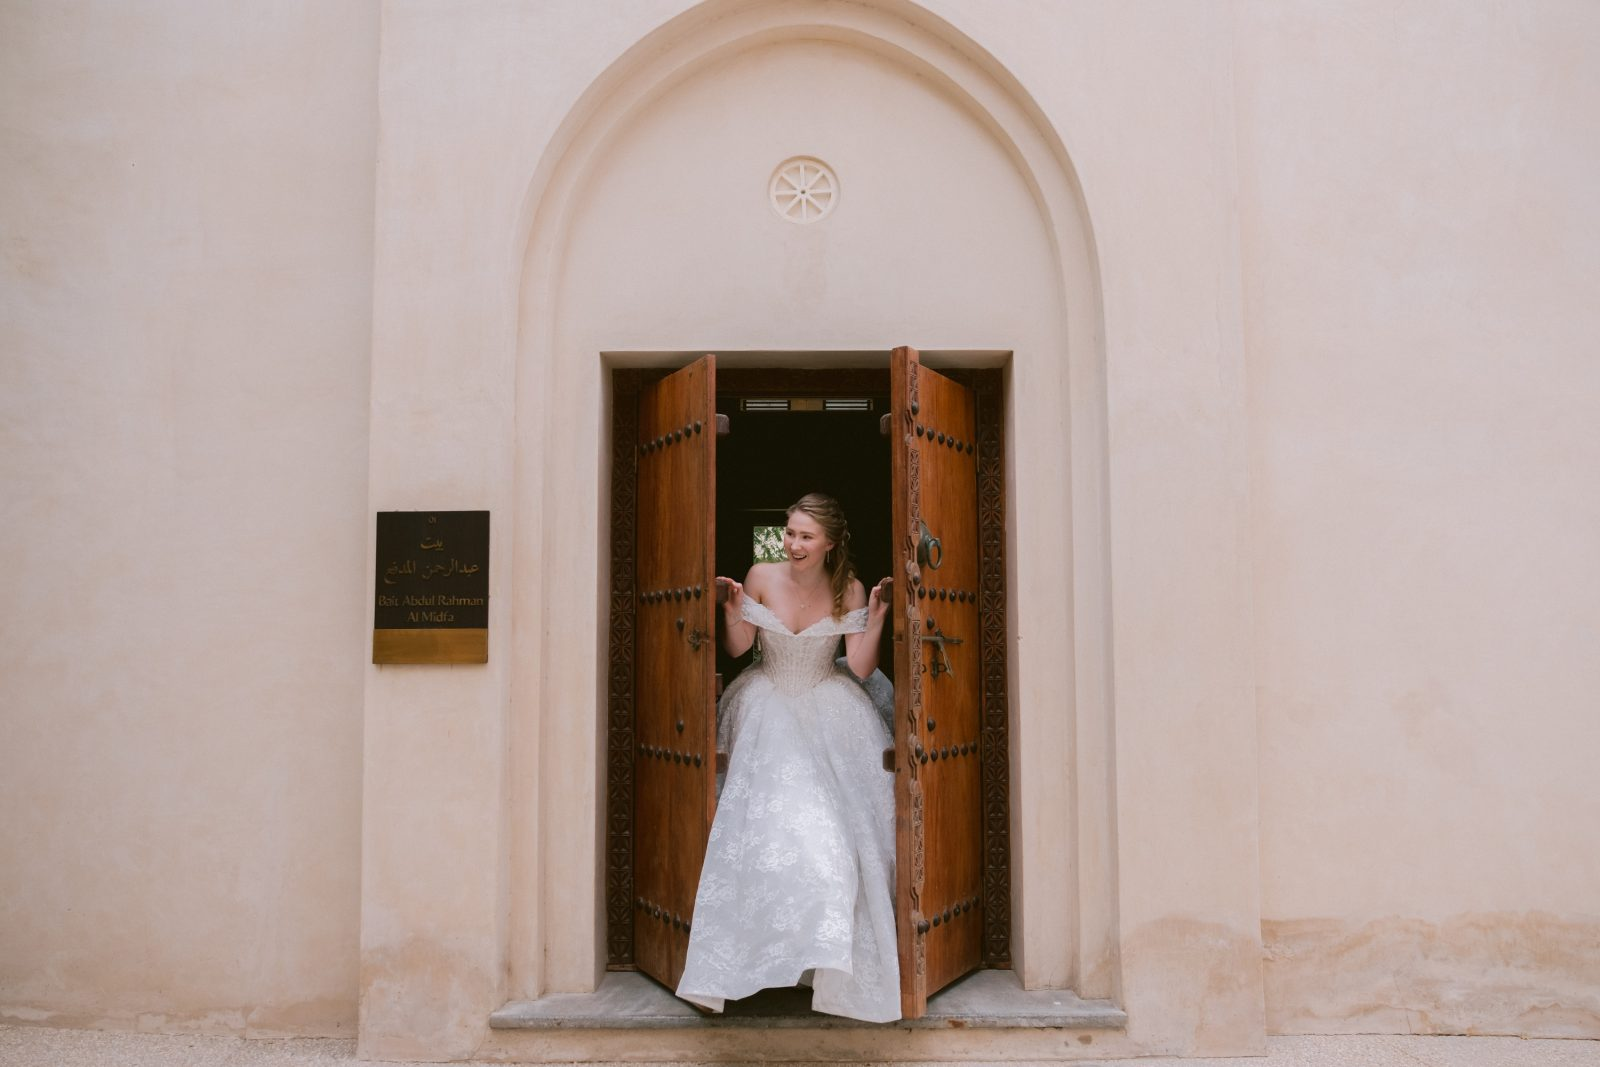 Bride peaking through the doors of an old Arabian building